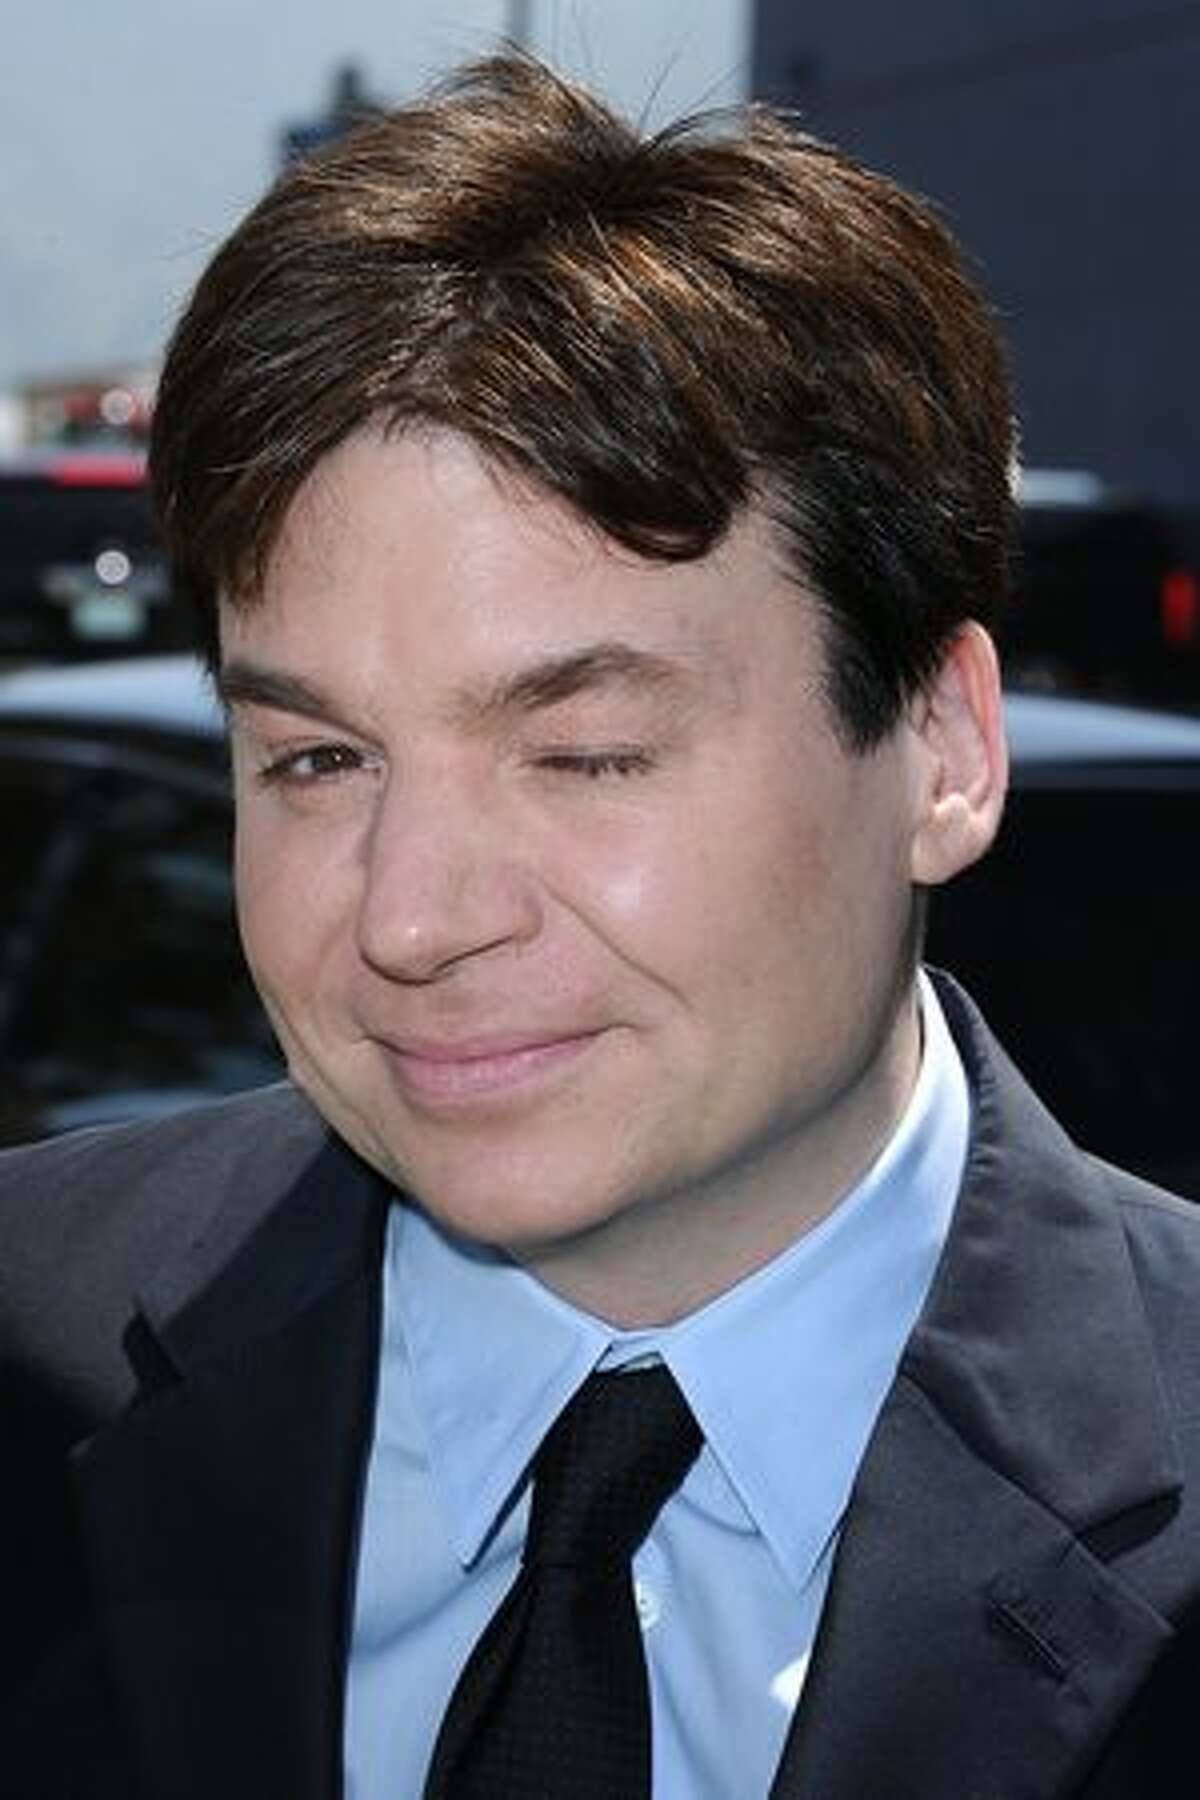 """Actor Mike Myers arrives at the premiere of DreamWorks Animation's """"Shrek Forever After"""" at Gibson Amphitheatre."""